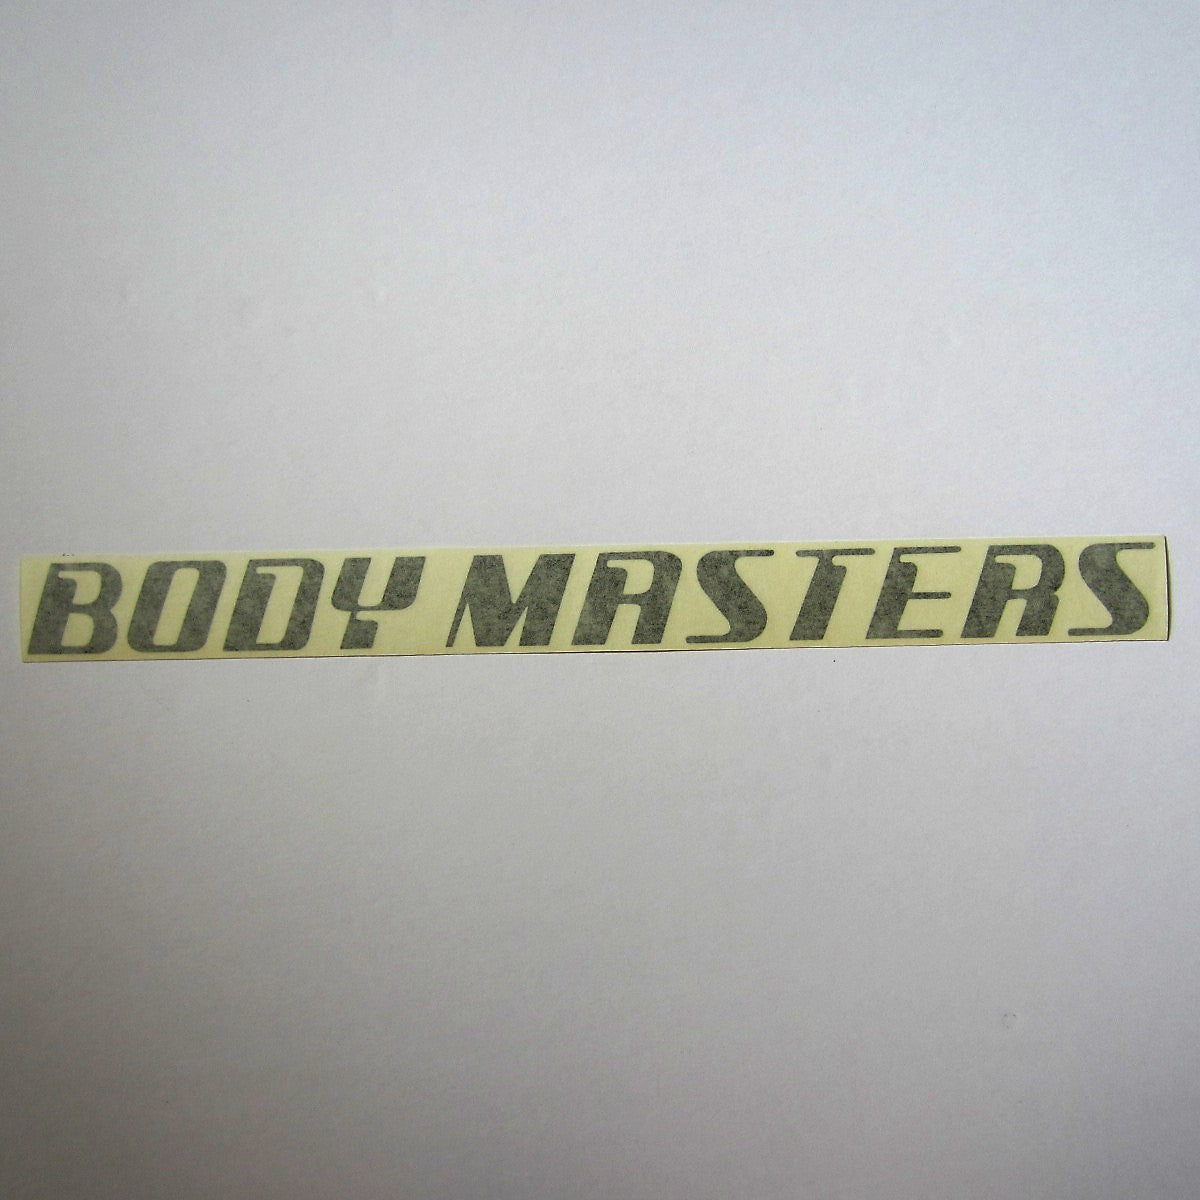 "Body Masters Frame Decal 11"" x 1"""